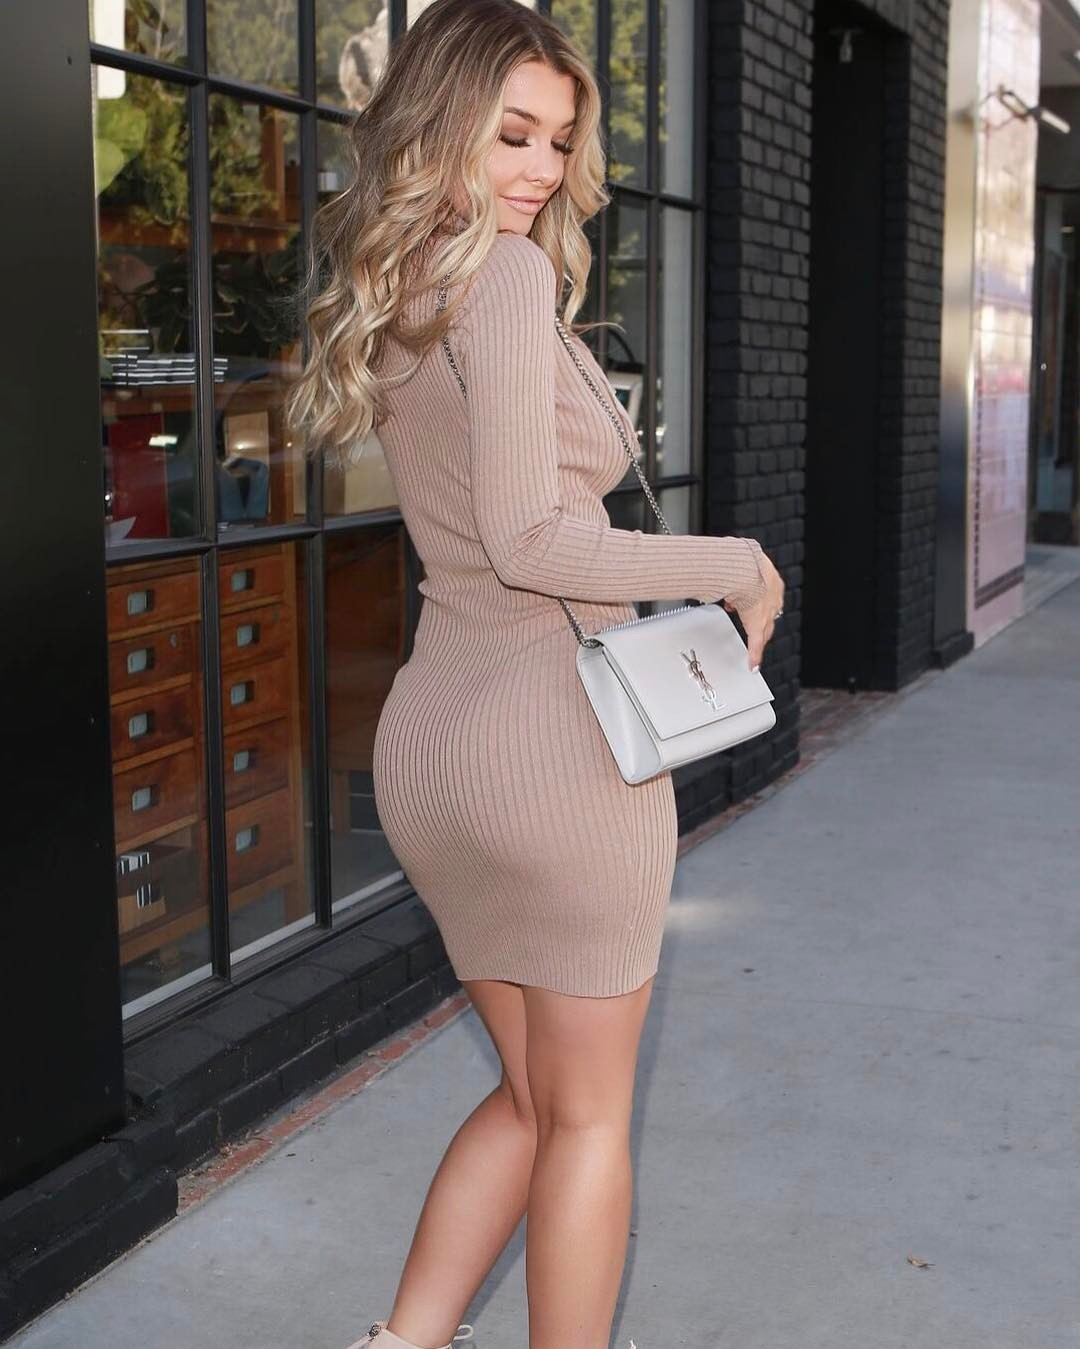 emily sears biggest butt